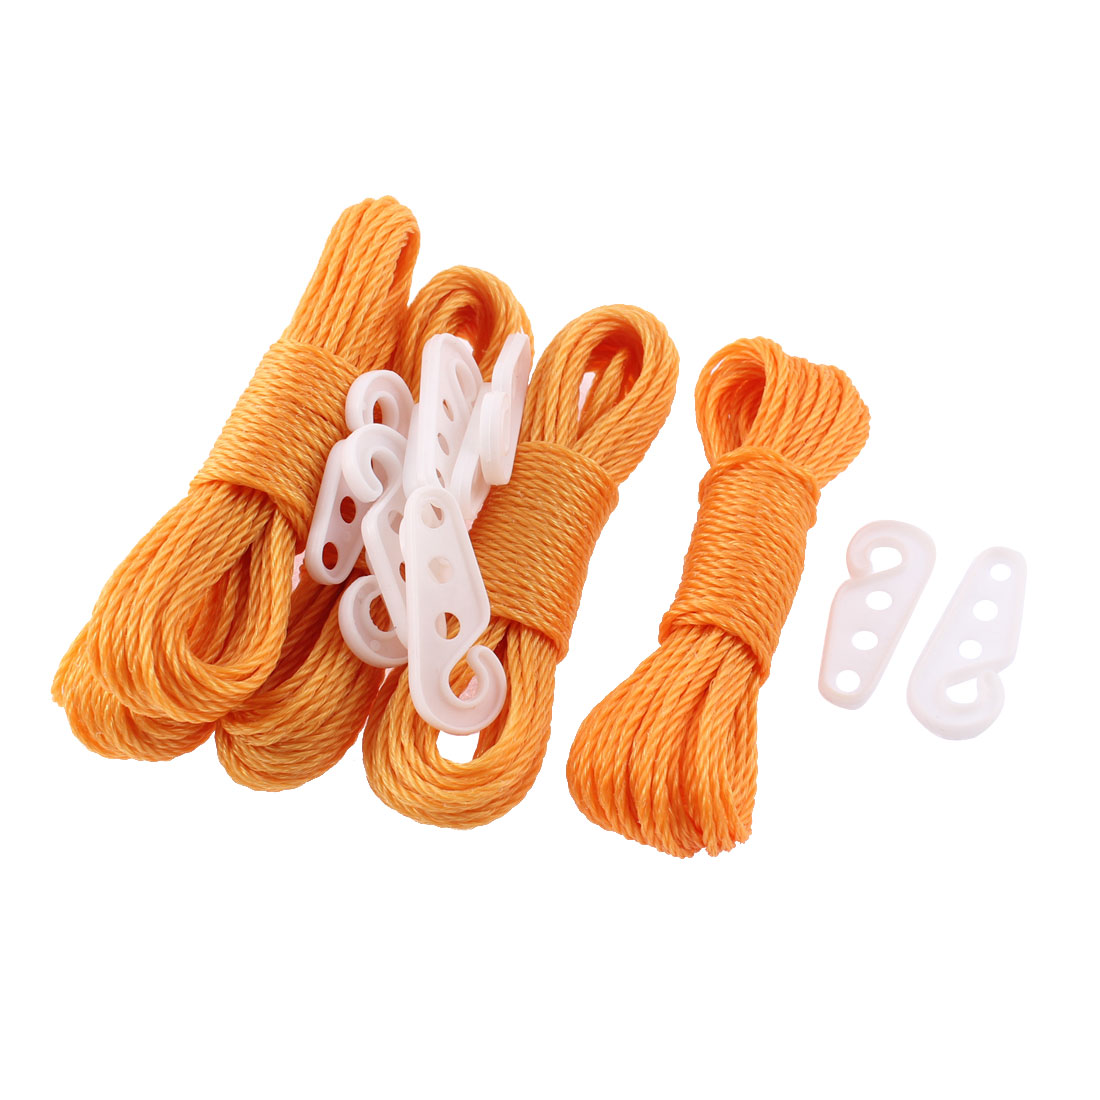 Outdoor Nylon Braided Hanging Laundry Clothes Rope 10 Meters Orange 5 Pcs